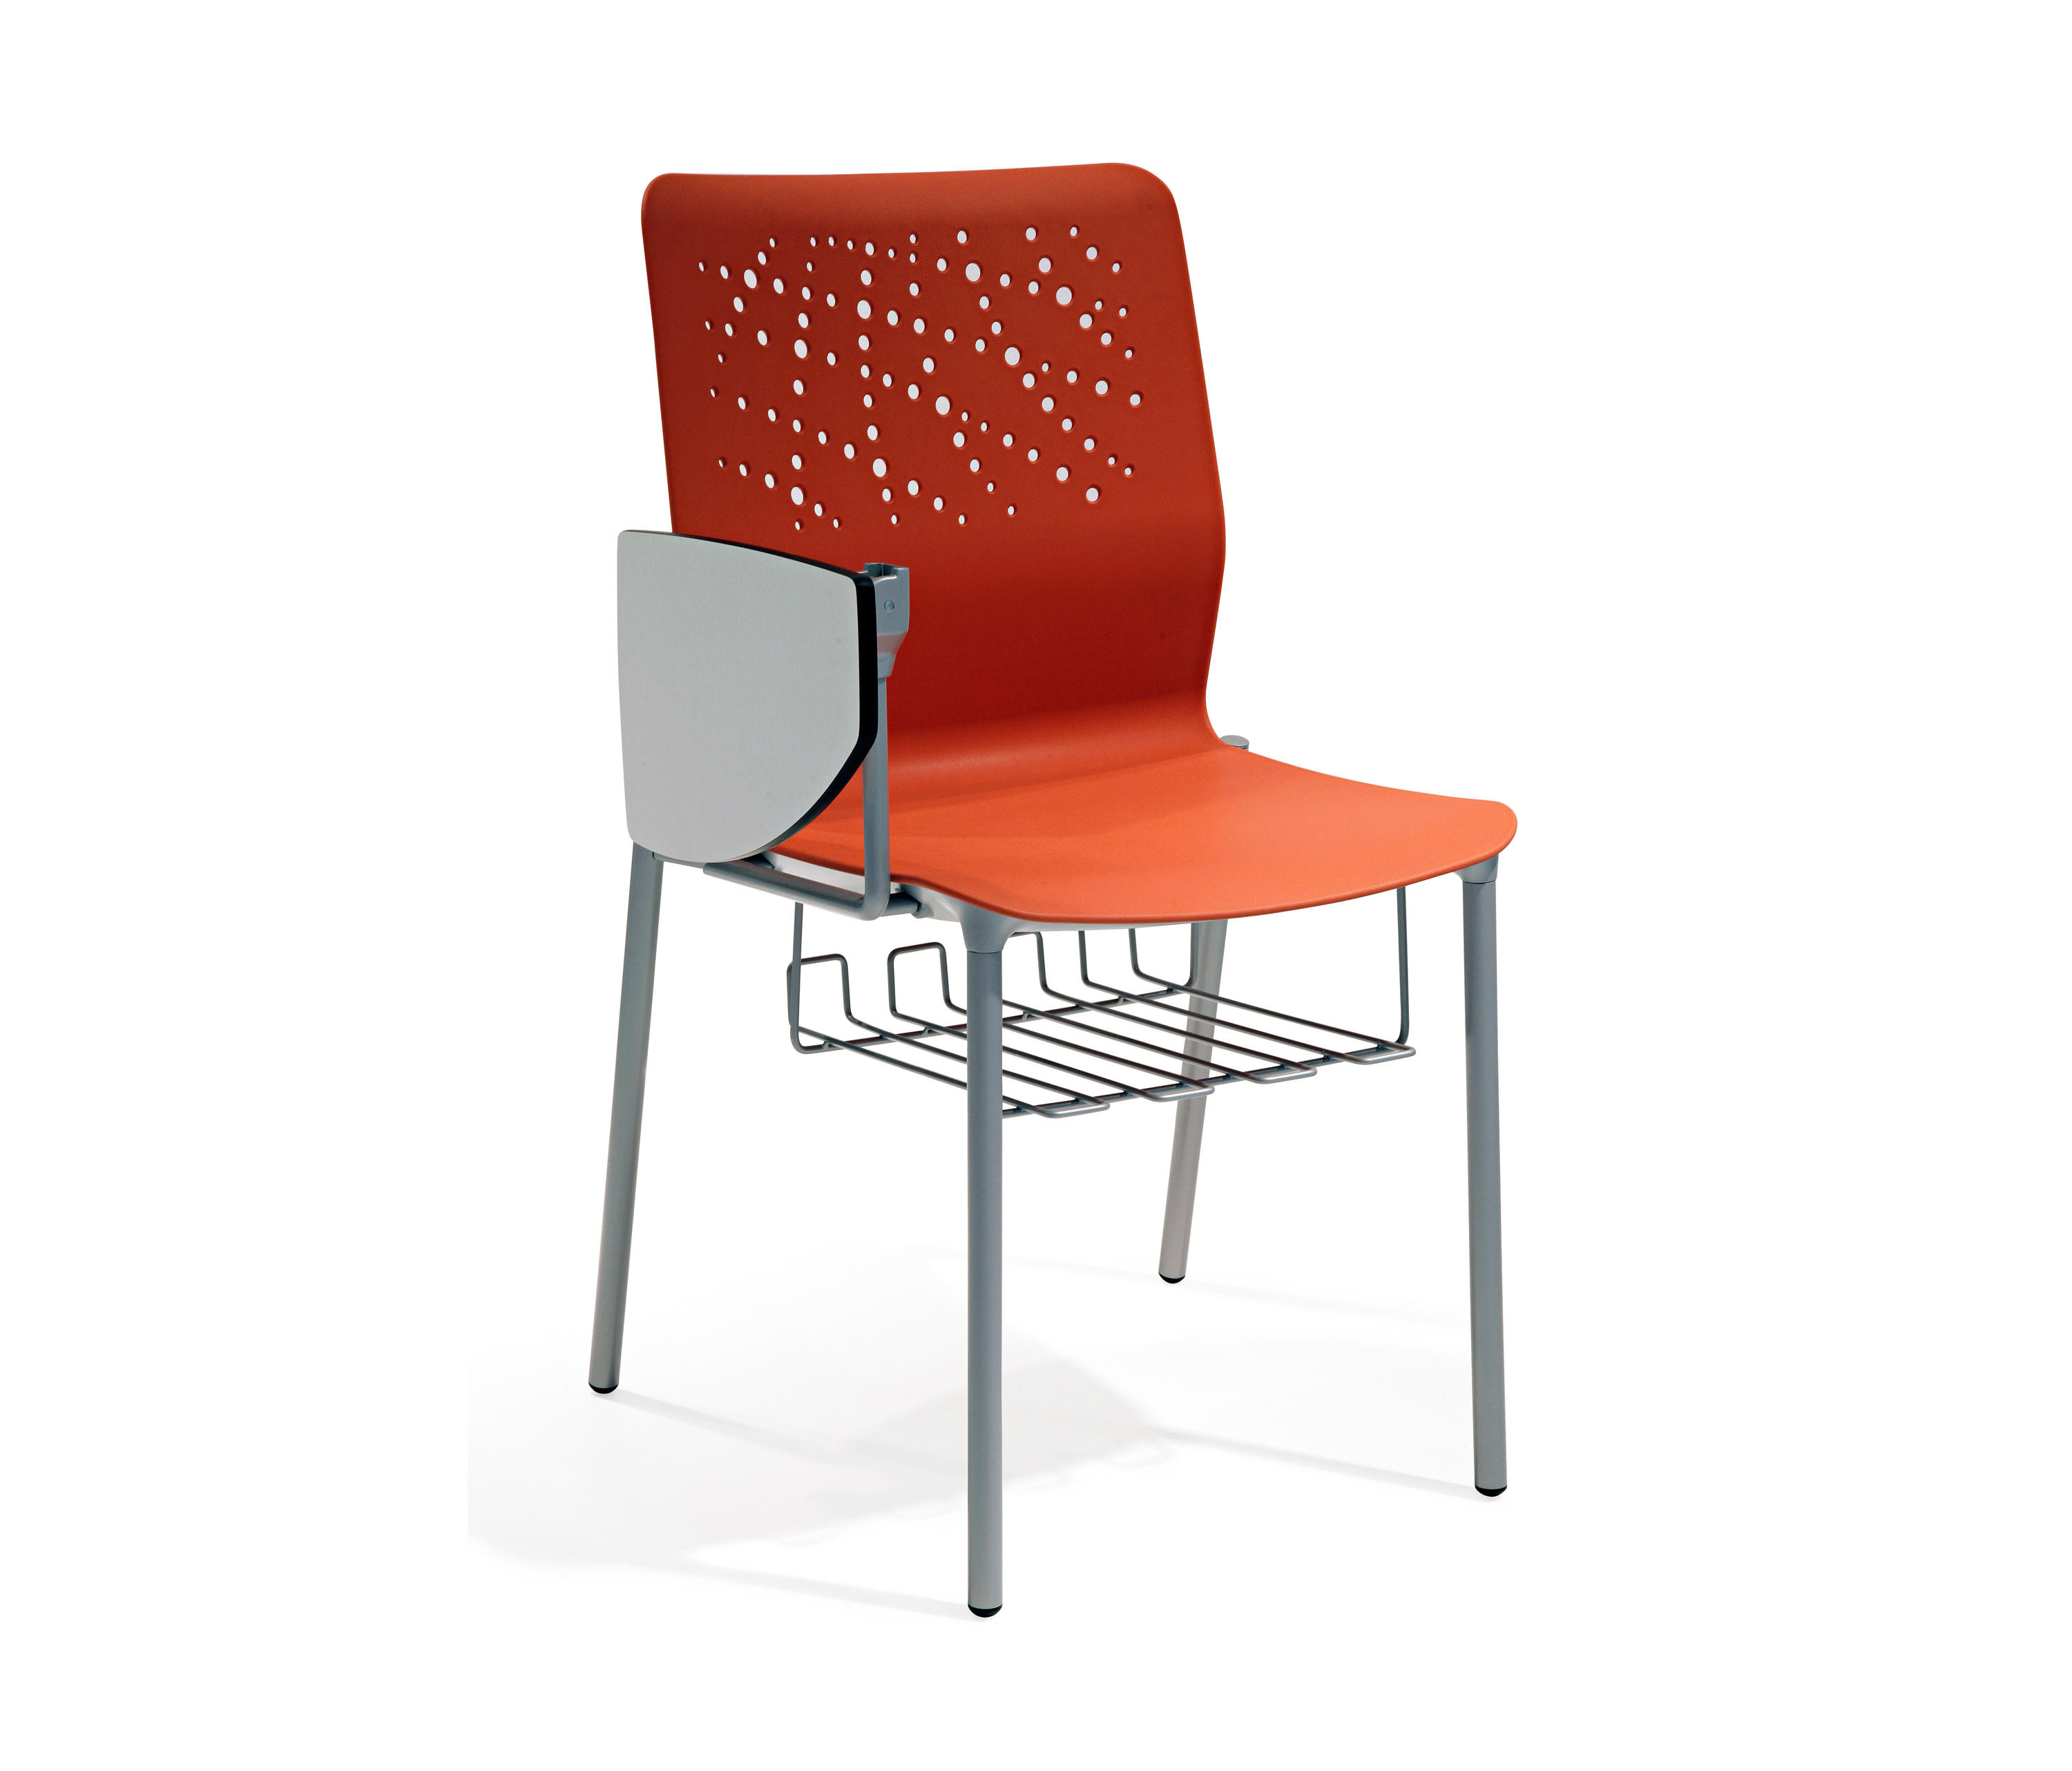 Delicieux Urban Block 10 By Actiu | Chairs